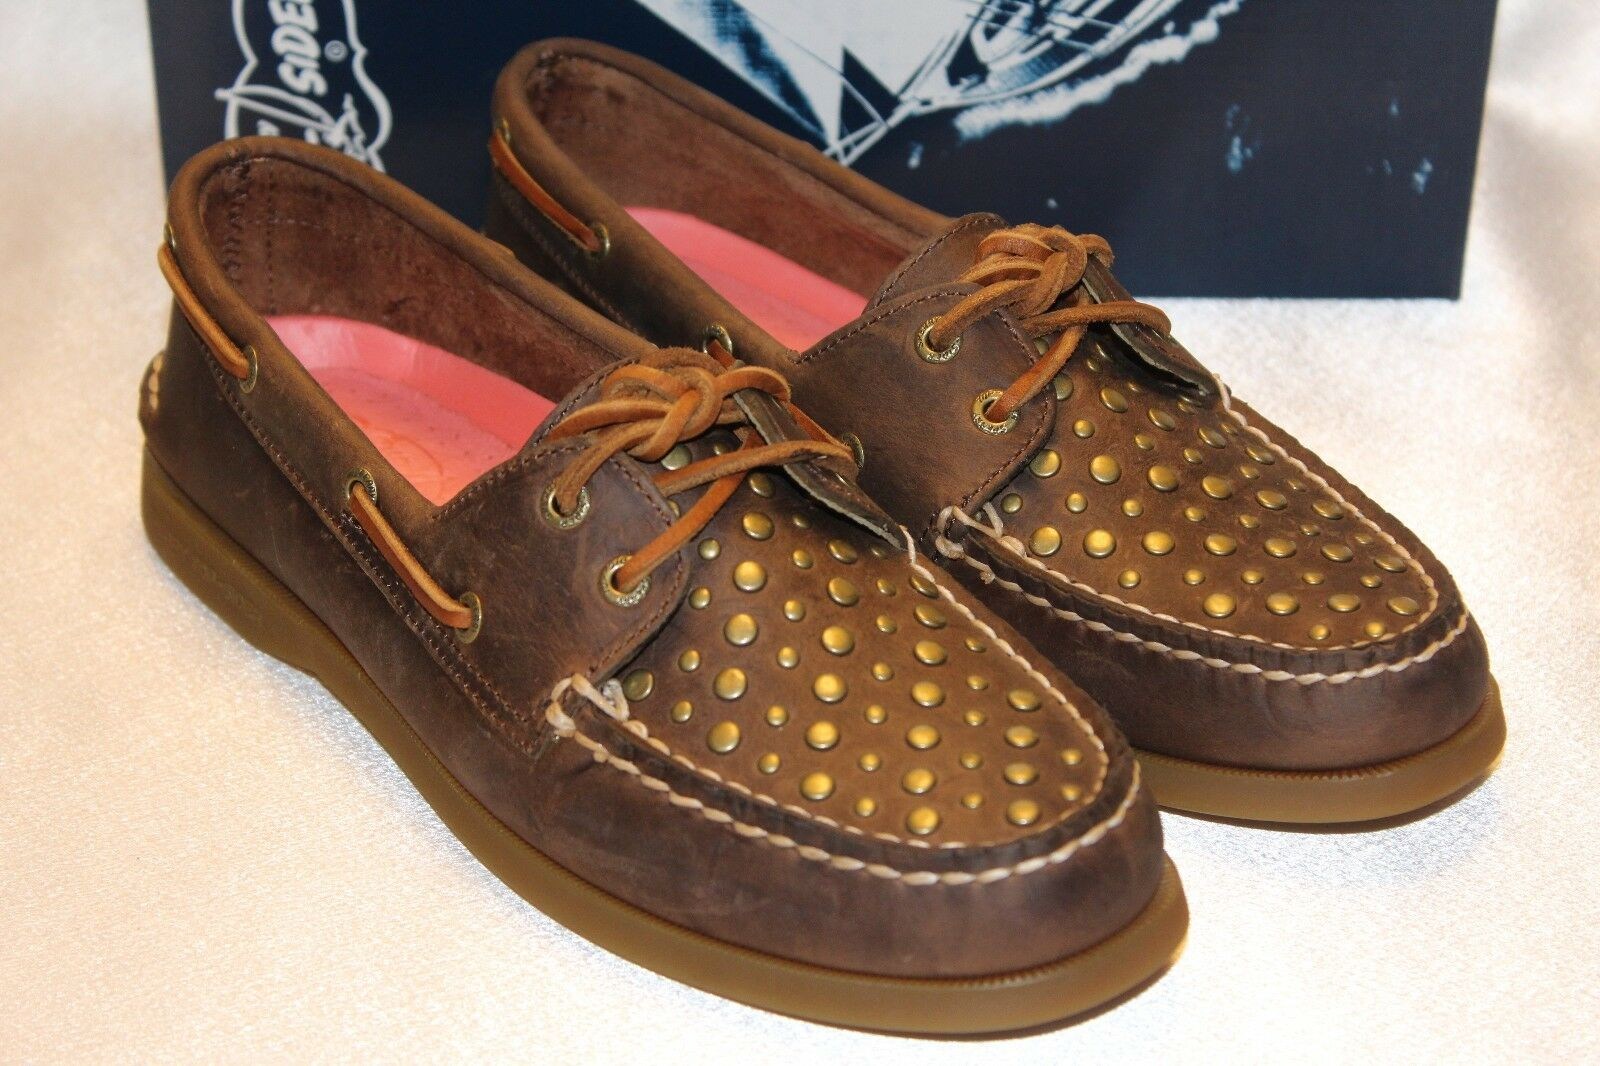 NEW Top  NIB  Sperry Top NEW Sider A/O 2 Eye Braun Leder Stud Boat Schuhes Sz 5 8 12 90 682acb